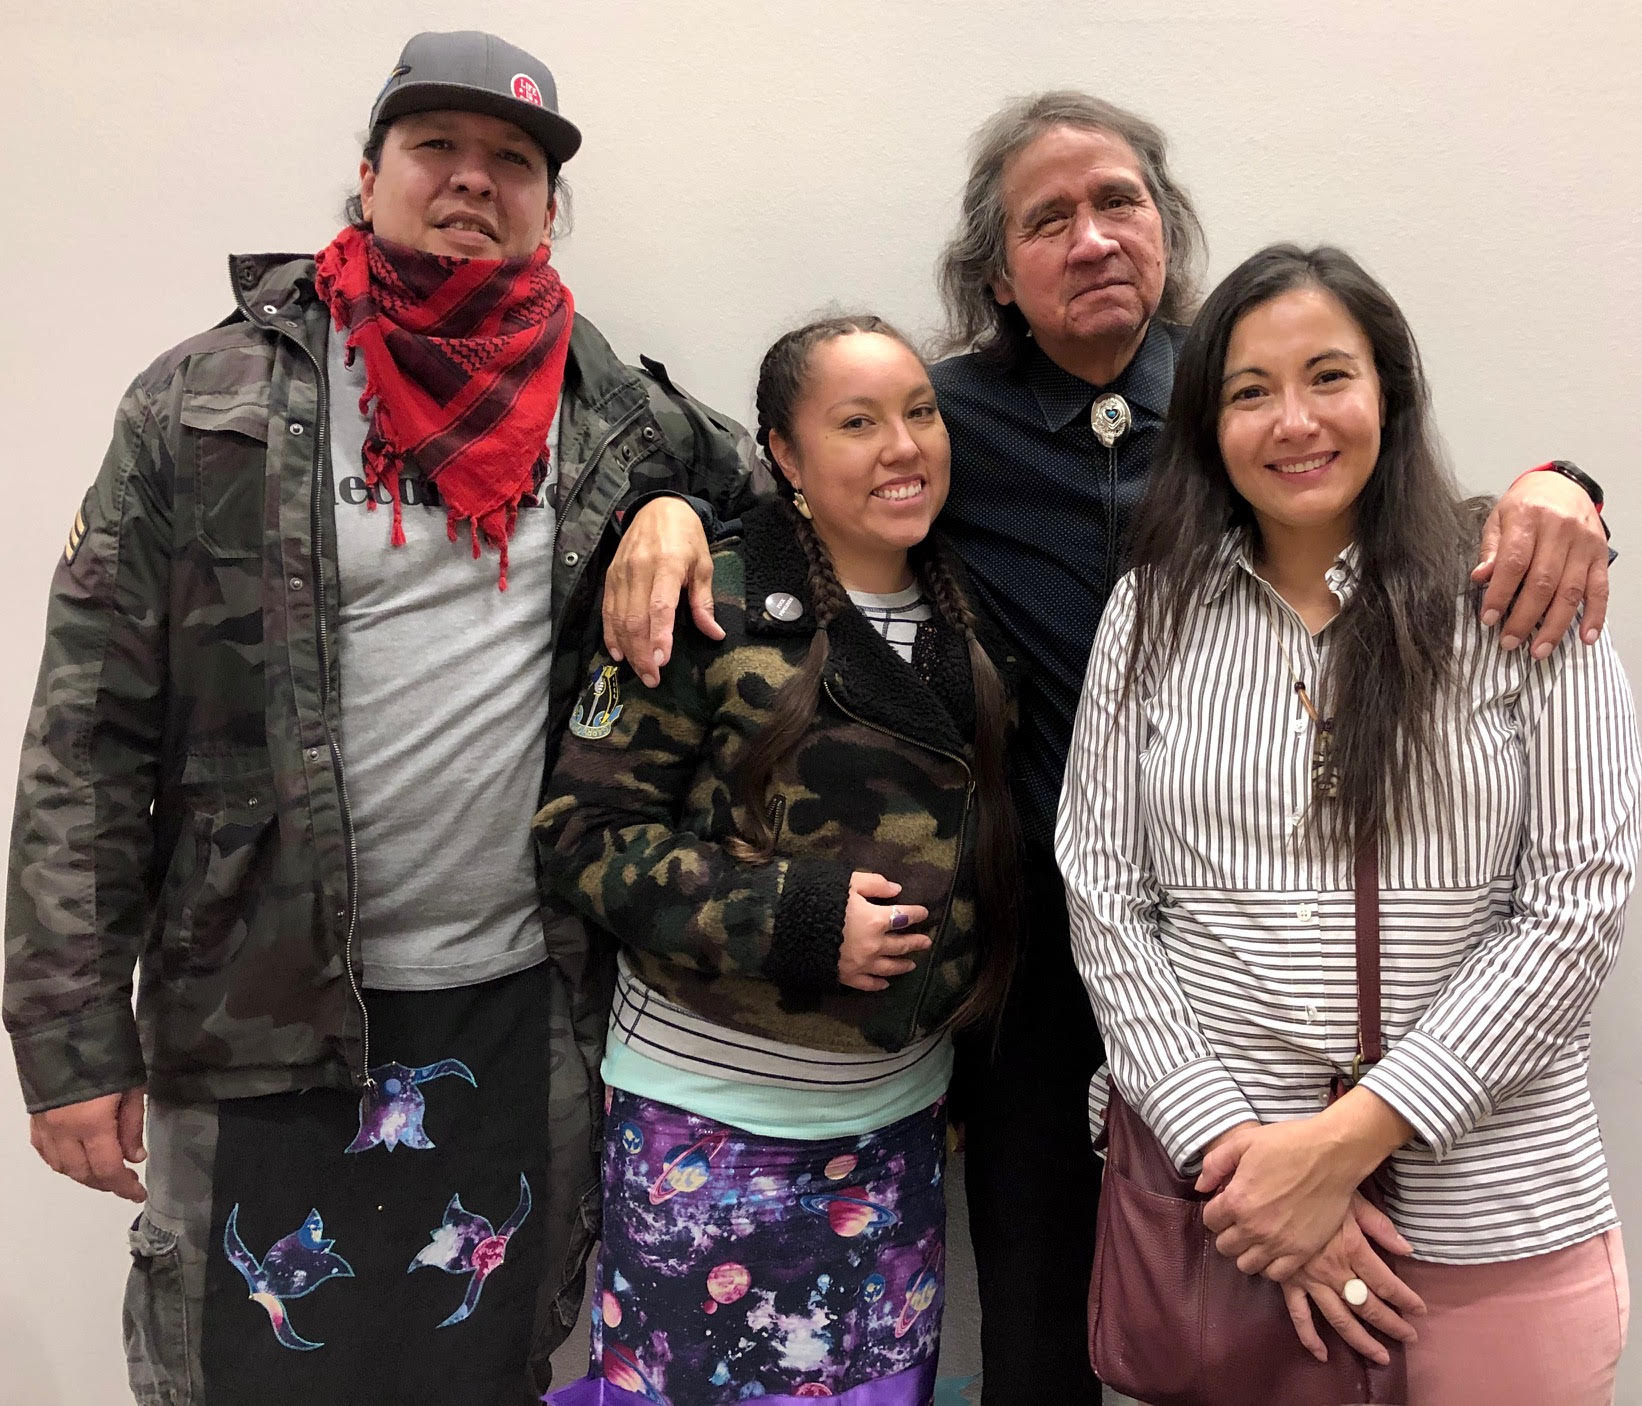 Manape LaMere (Sioux Nation of Indians), Sunrose Ironshell (Sicangu & Oglala Lakota), Frank LaMere (Winnebago) and Christine Nobiss (Plains Cree/Saulteaux) gather for a photo during the feast after the March to Honor Lost Children. Frank LaMere, a long time activist and community leader, is one of the co-founders of the march.